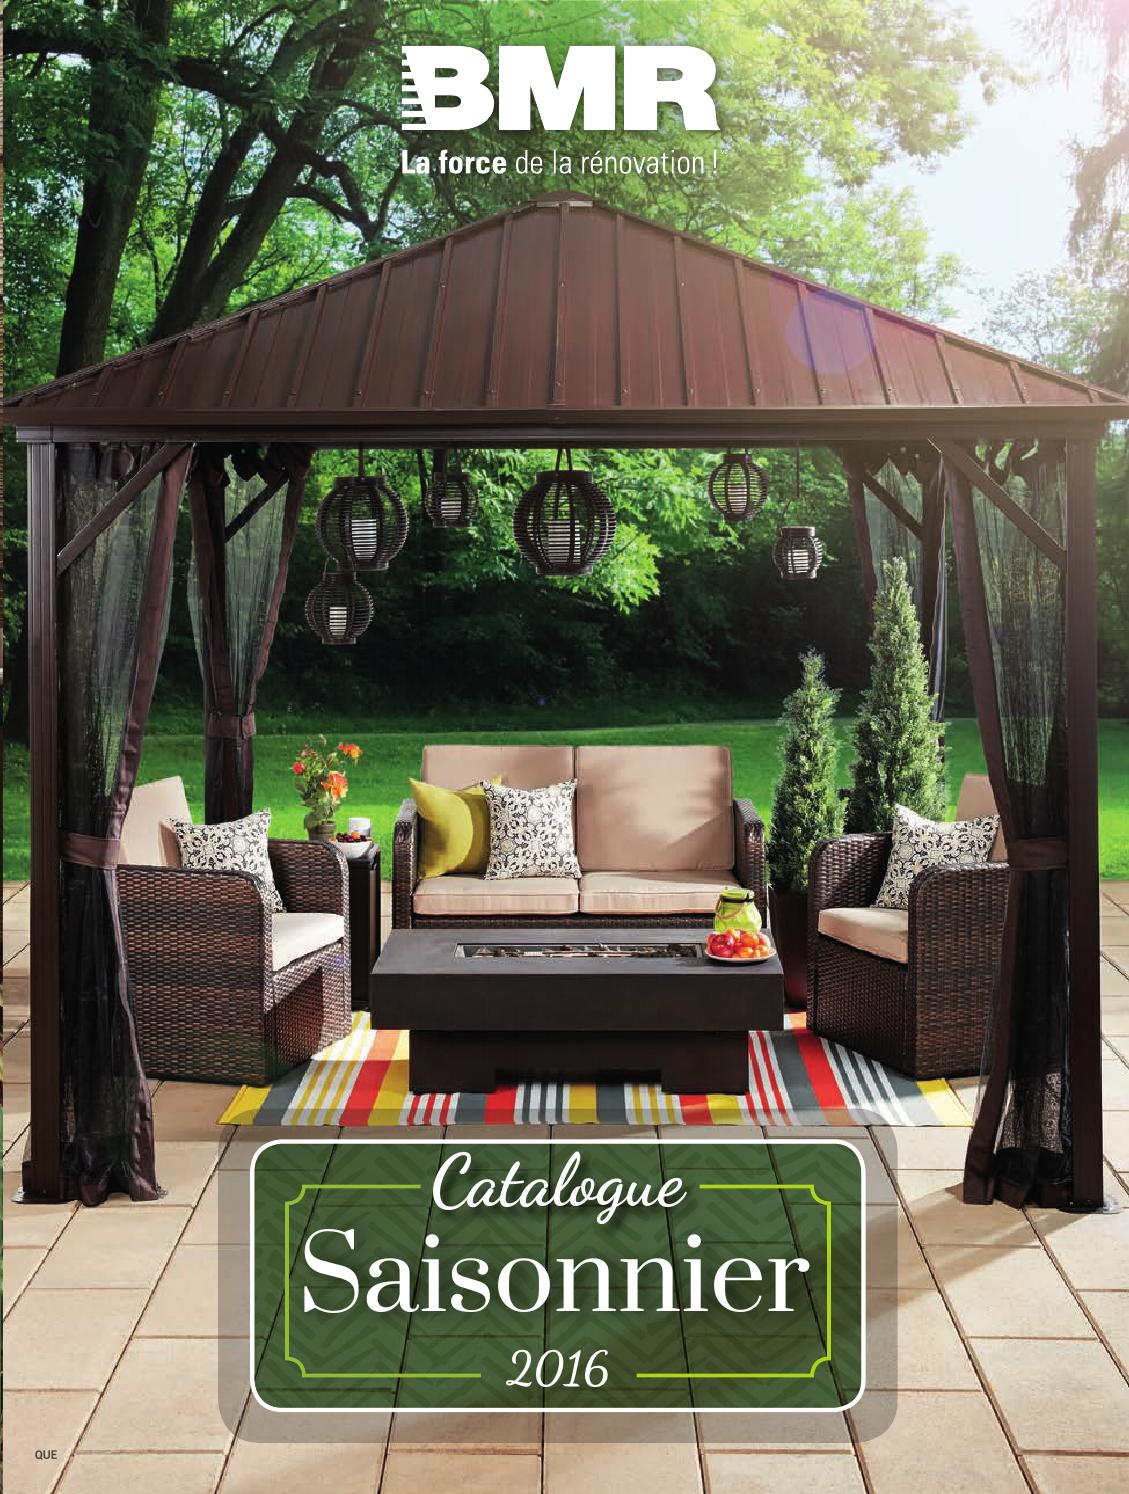 Catalogue Saisonnier Bmr 2016 By Groupe Bmr Issuu